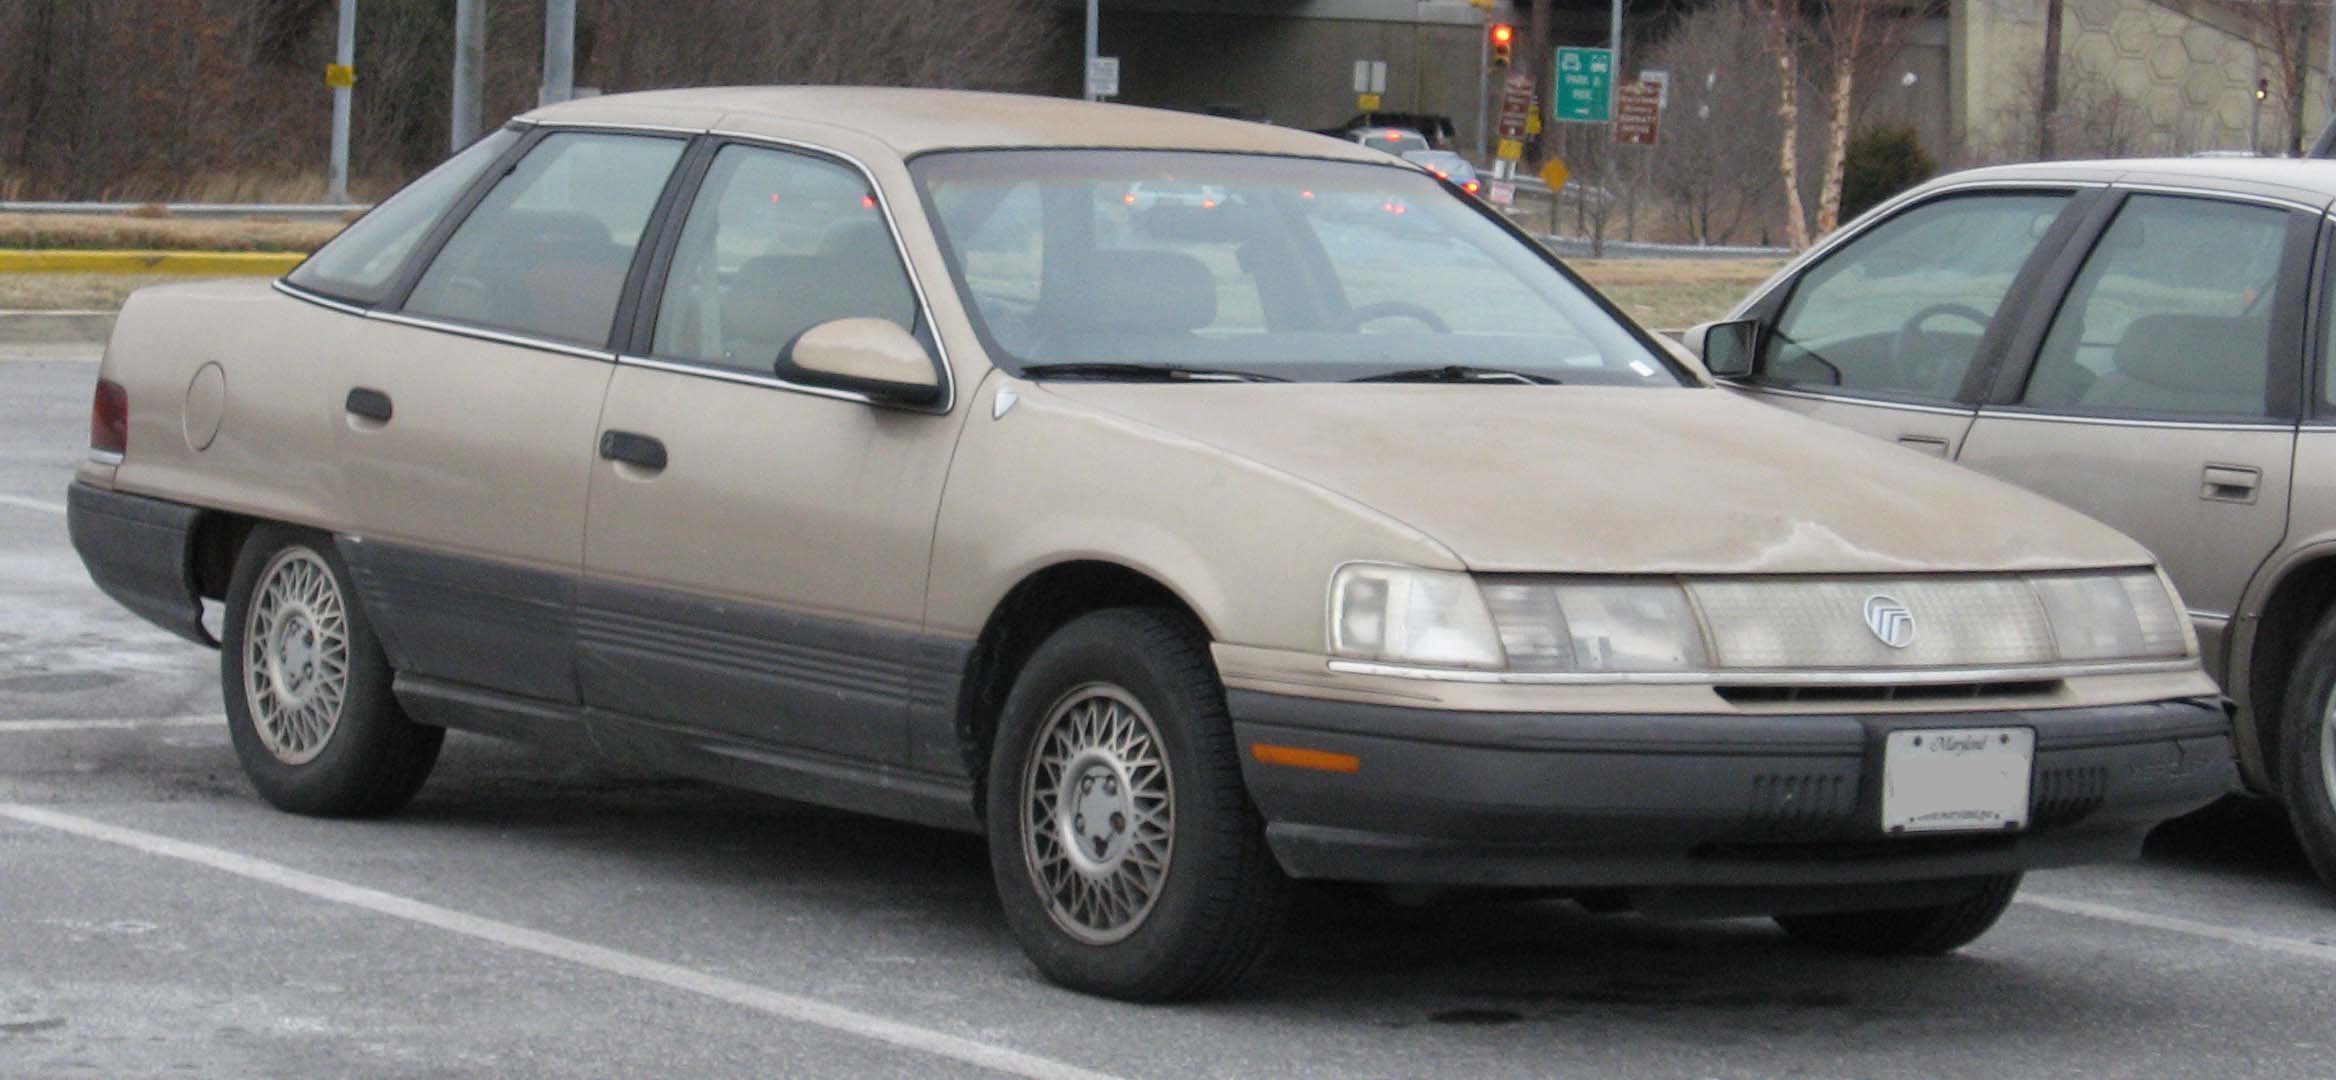 1990 Mercury Sable #6